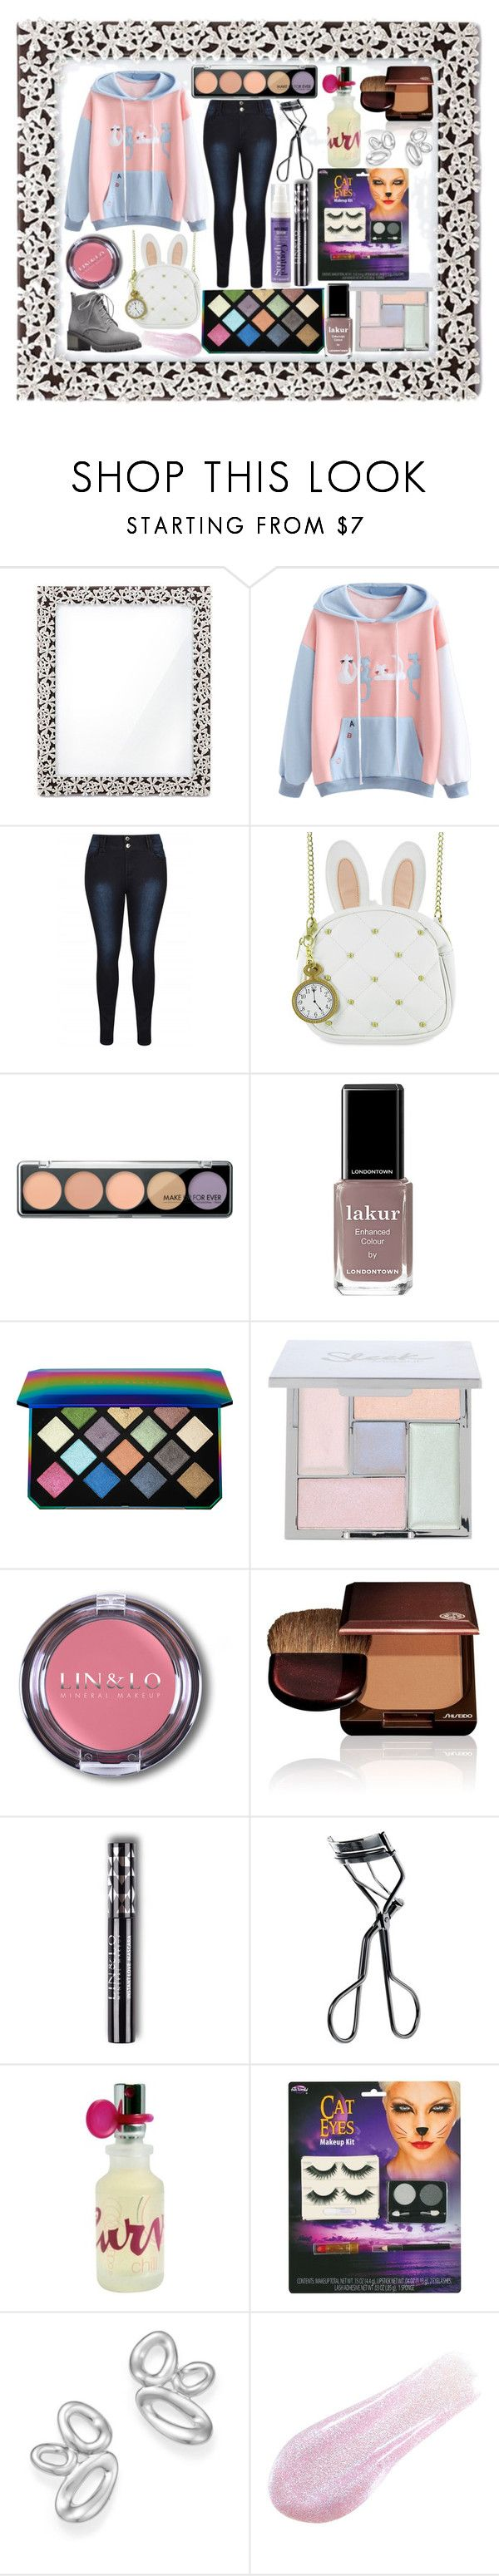 """Untitled #1045"" by yasm-ina ❤ liked on Polyvore featuring L'Objet, Loungefly, MAKE UP FOR EVER, Londontown, Puma, Shiseido, MAC Cosmetics, Liz Claiborne, Ippolita and Lipstick Queen"